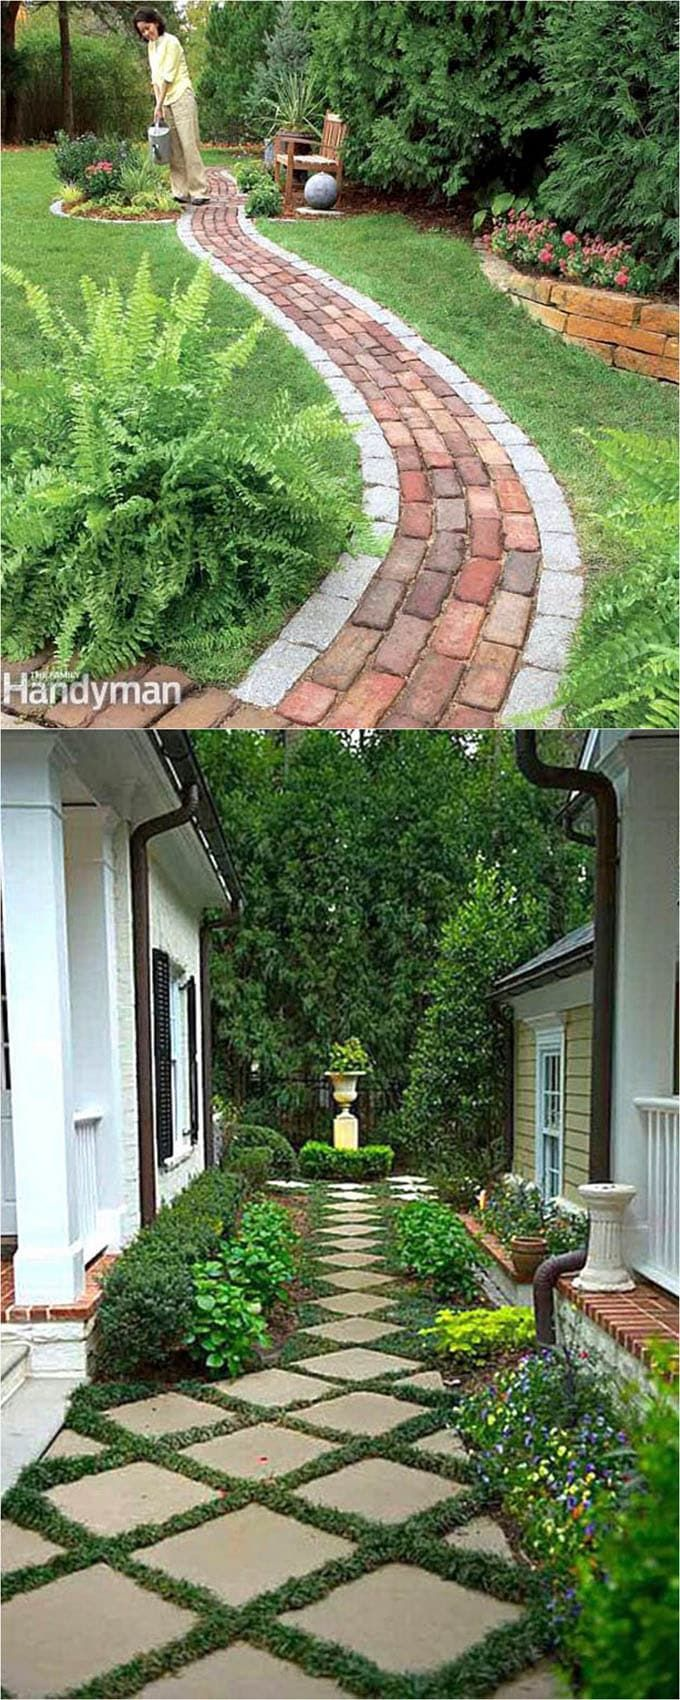 25 best DIY friendly & beautiful garden path ideas and helpful tips from a professional landscape designer! Build your own attractive and functional garden walkways using simple inexpensive materials, and a list of resources / favorite books on garden path construction! - A Piece of Rainbow